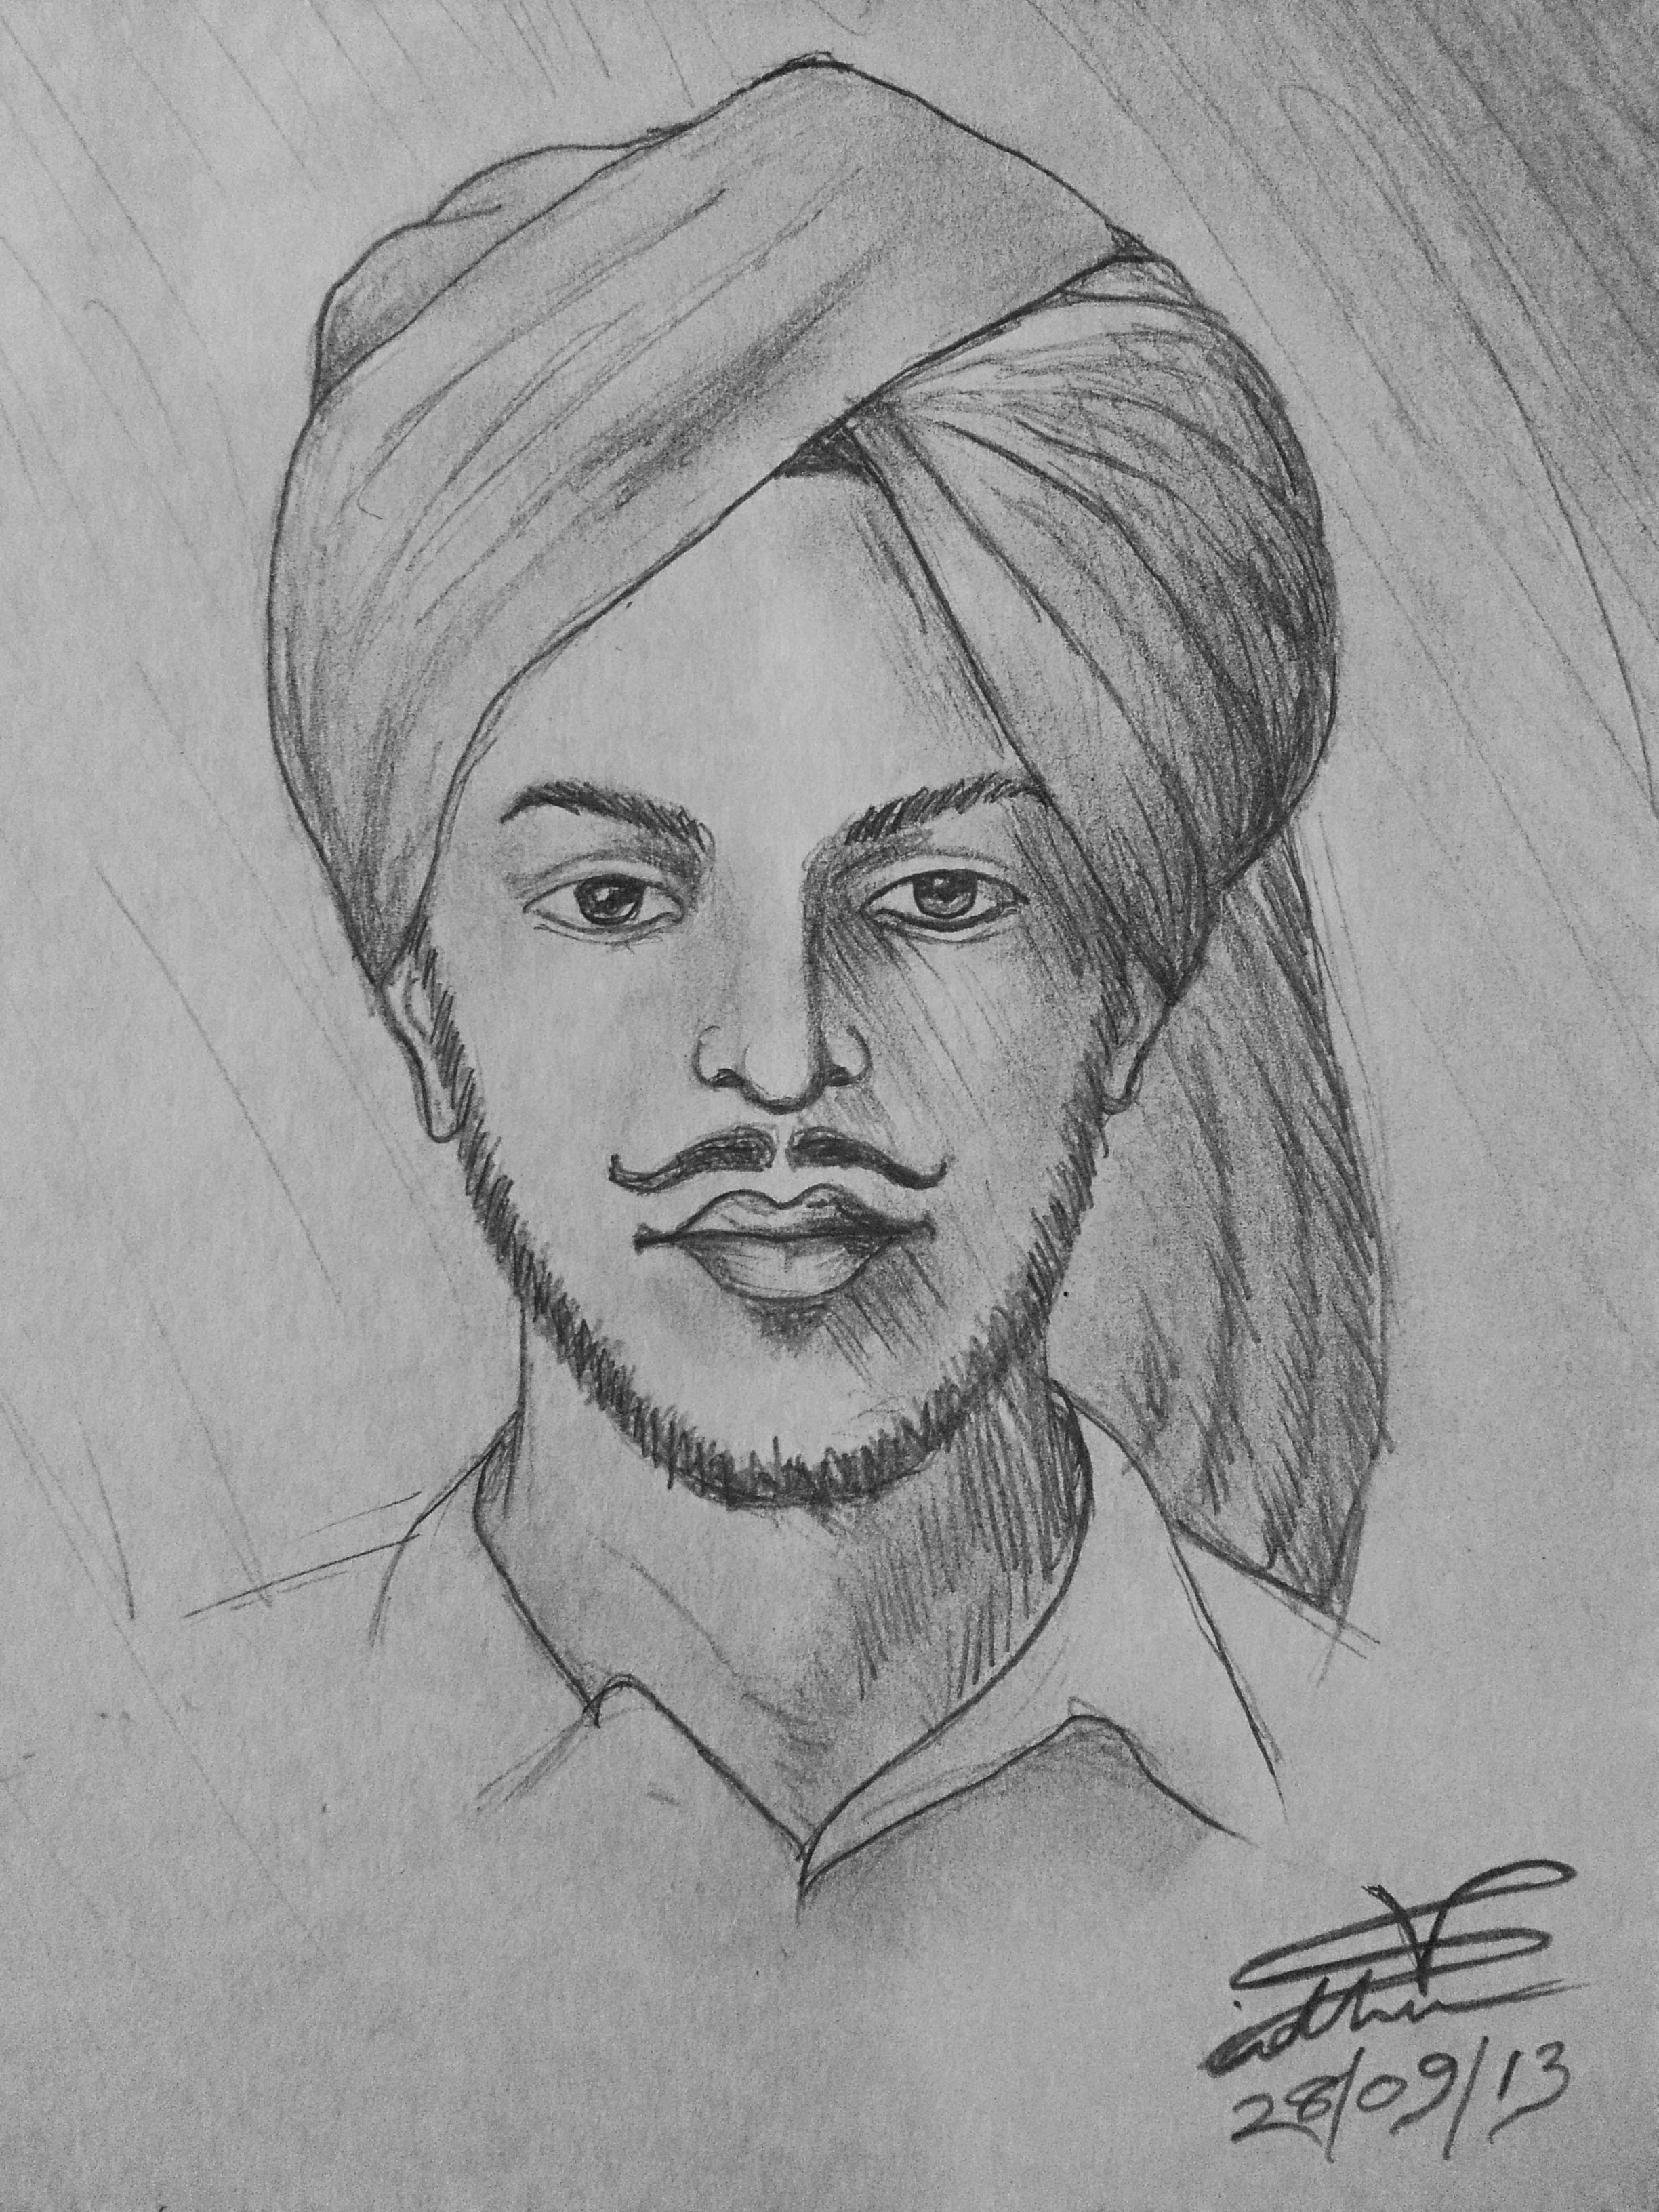 bhagat singh Buy products related to bhagat singh products and see what customers say about bhagat singh products on amazoncom free delivery possible on eligible purchases.